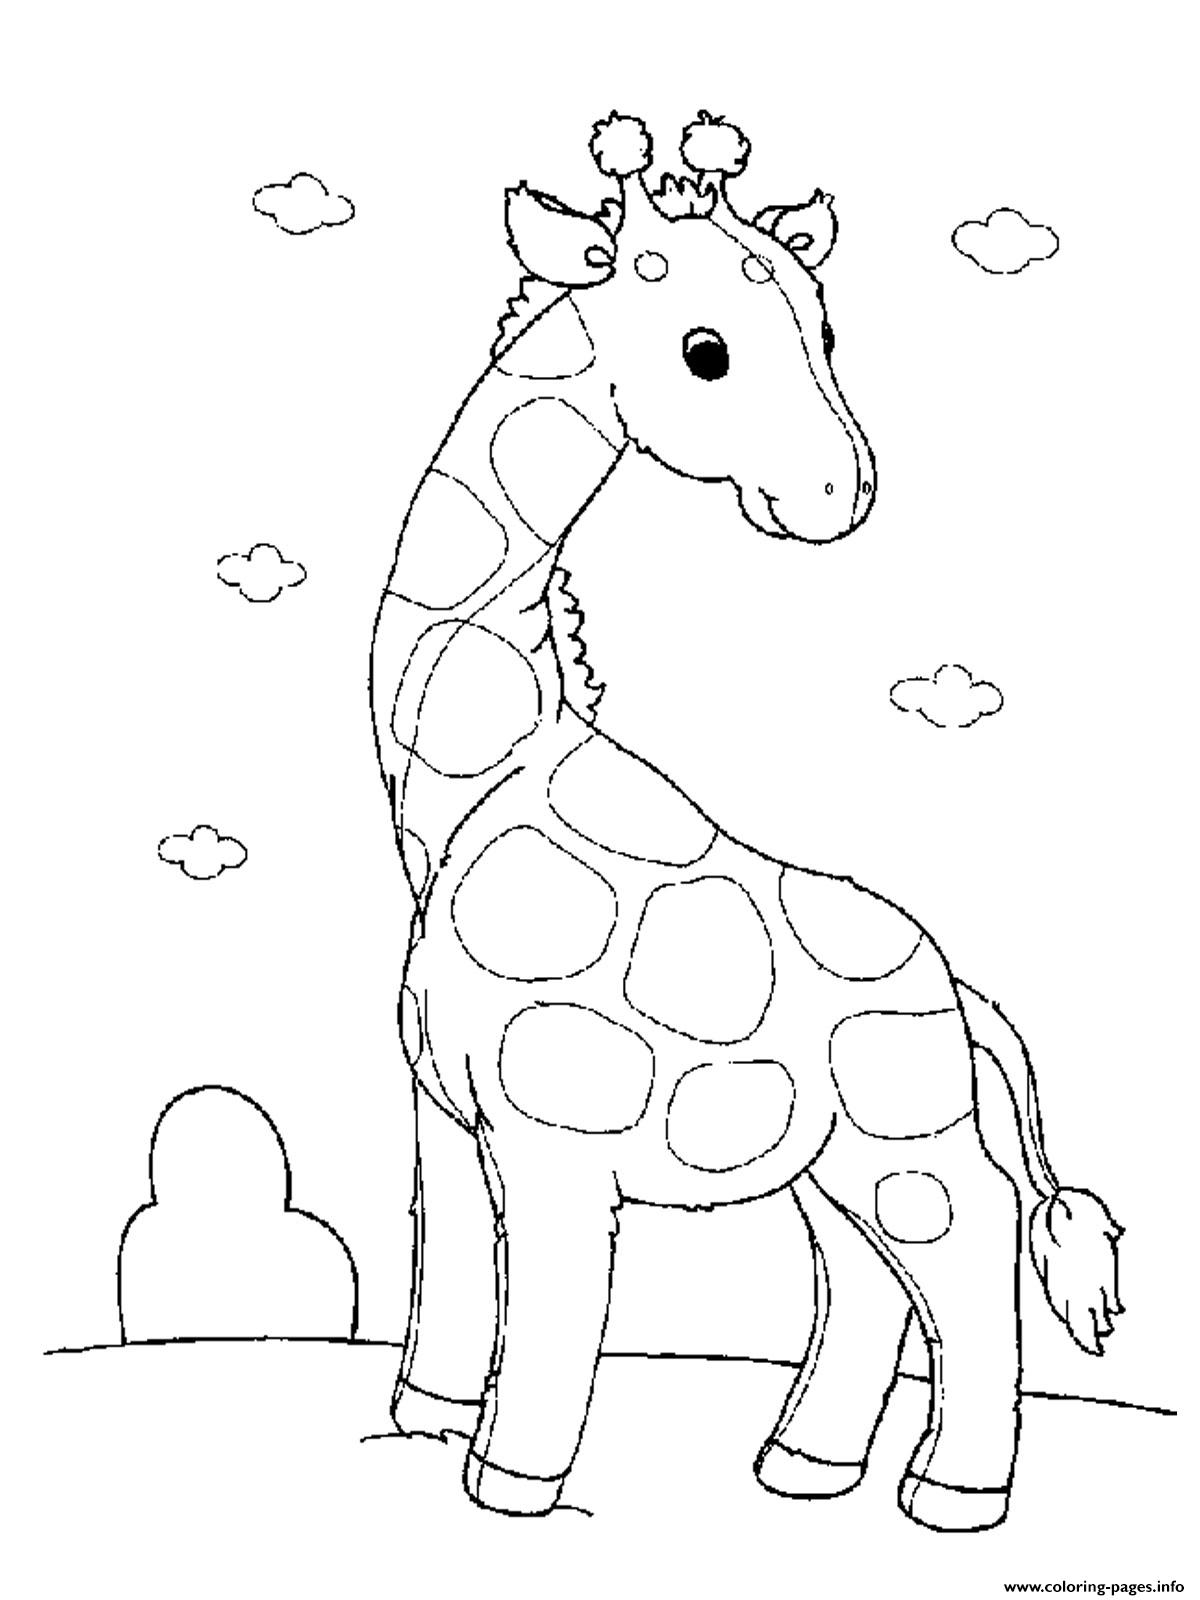 baby giraffe s for girls animals printable13b0 coloring pages printable. Black Bedroom Furniture Sets. Home Design Ideas